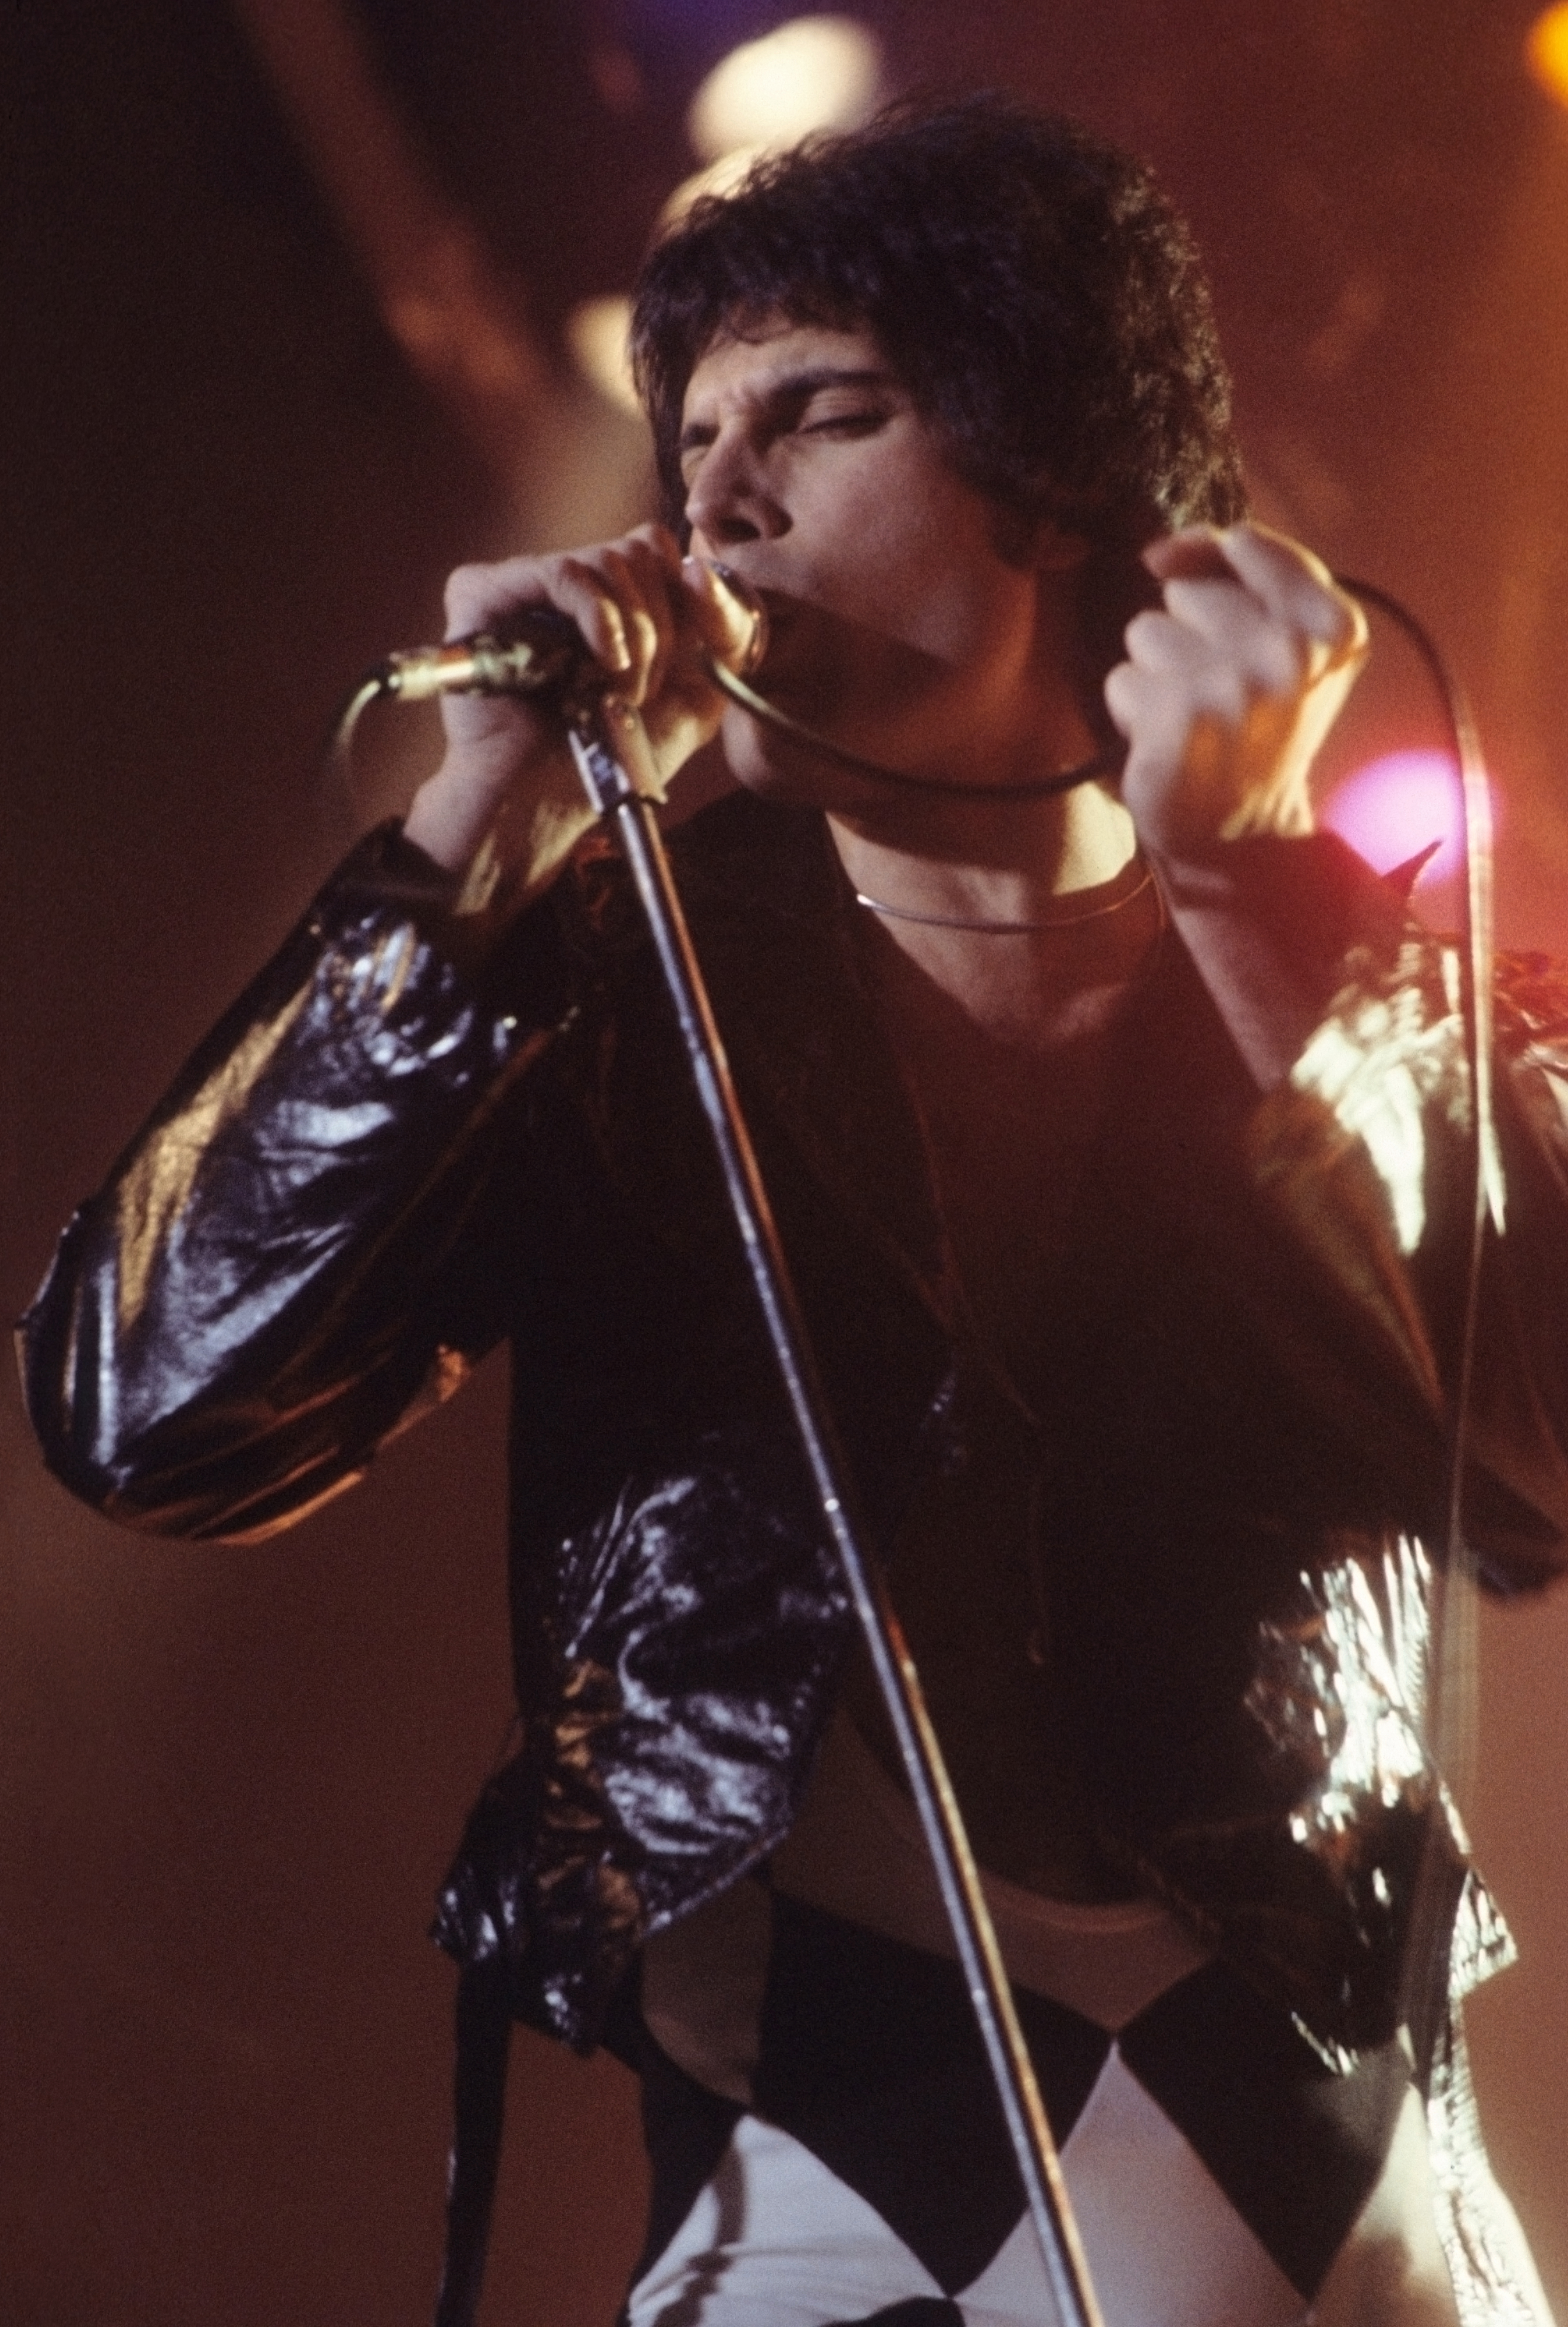 """Queen lead singer Farrokh """"Freddie"""" Mercury, photographed here performing in New Haven in November 1977, died from bronchial pneumonia resulting from AIDS in 1991."""